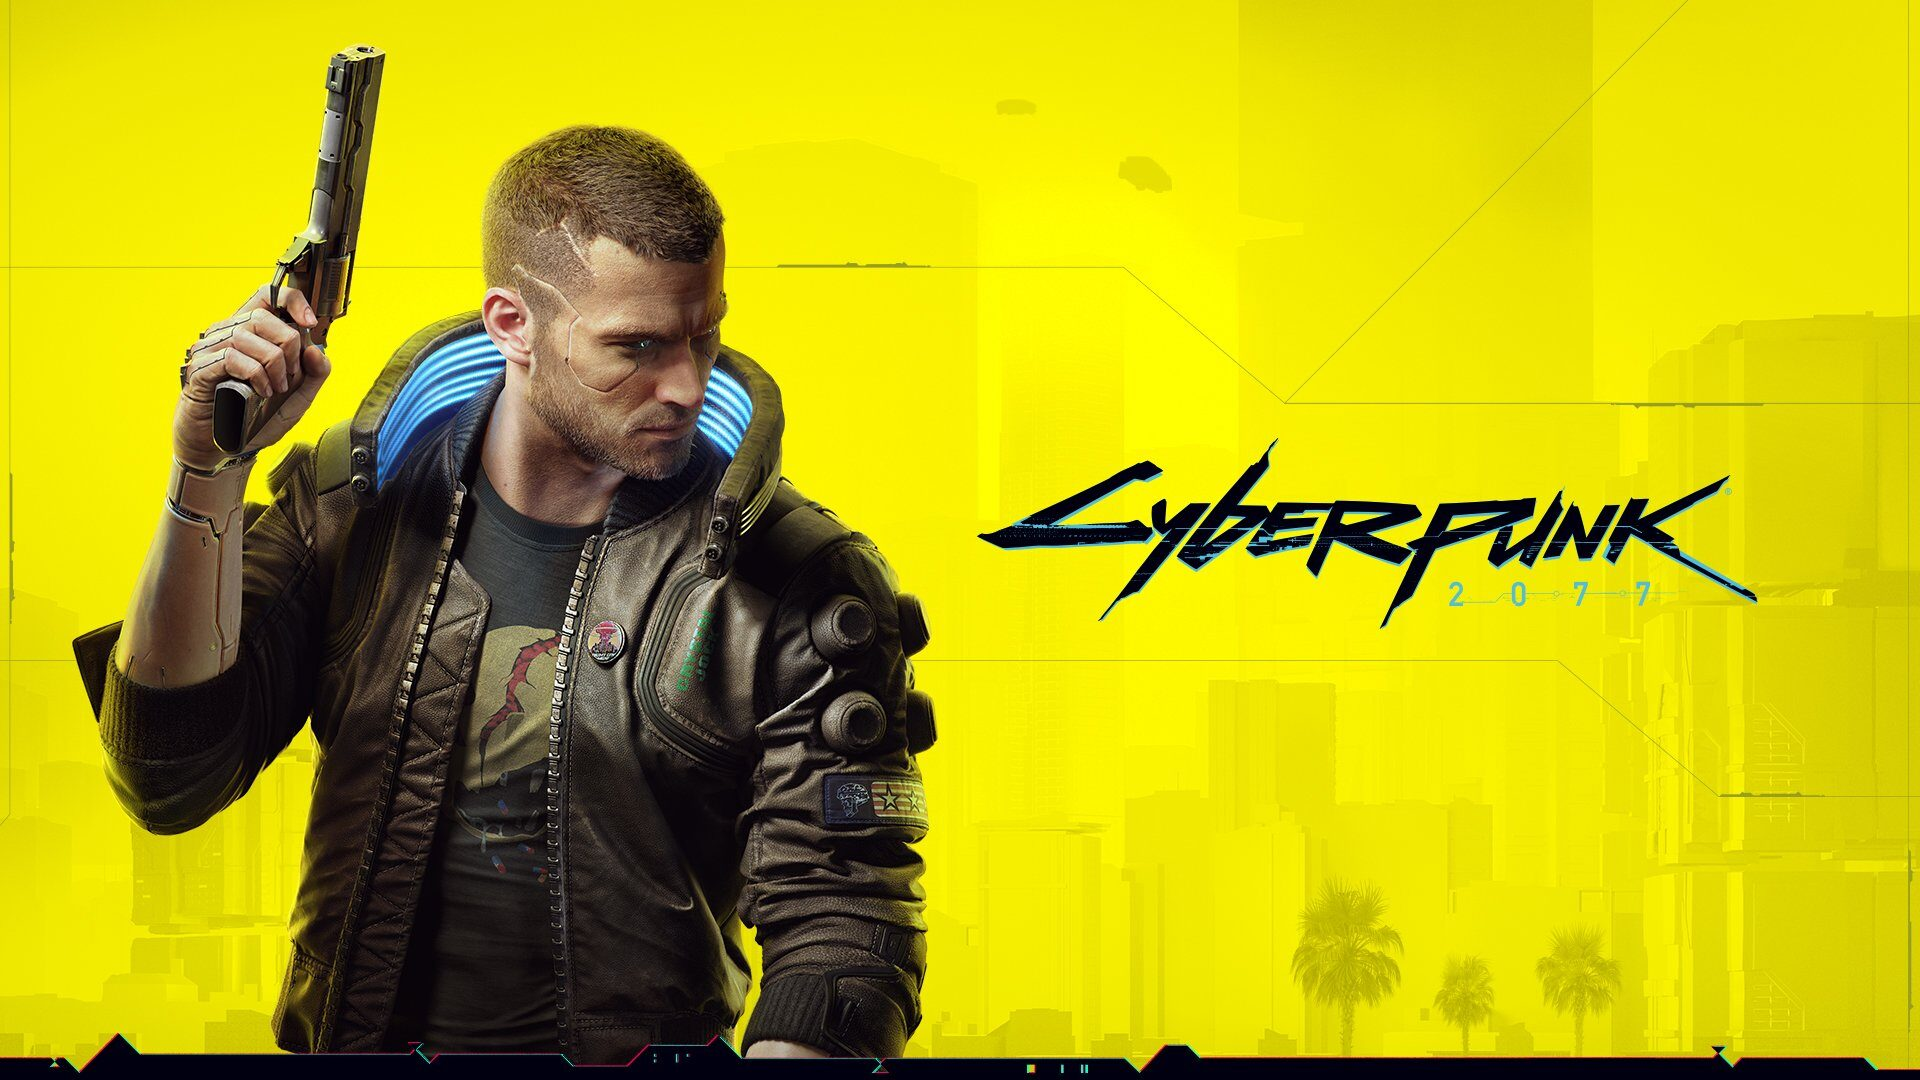 A yellow wallpaper with futuristic text that says Cyberpunk. A cyborg looking man is looking off to the side, holding a futuristic pistol and wearing combat clothing, while also rocking an awesome shaved hairstyle. He is epic. He is the future.